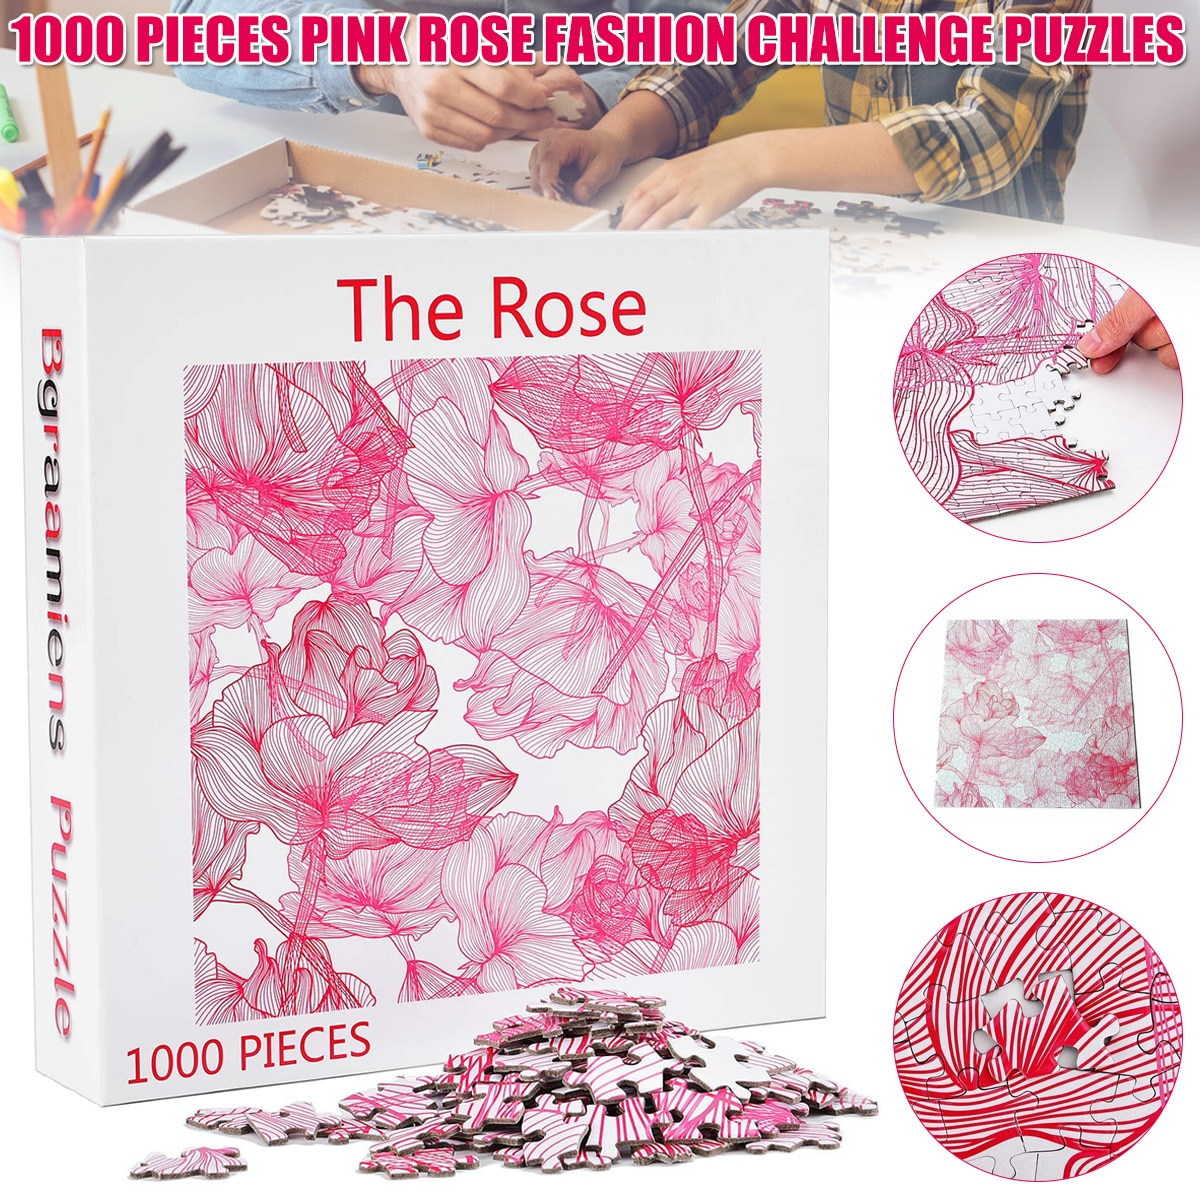 1000pcs Wooden Puzzle Rose Pattern Fashion Challenge Blue Board Jigsaw Puzzles Gift for Adult Kids LBV